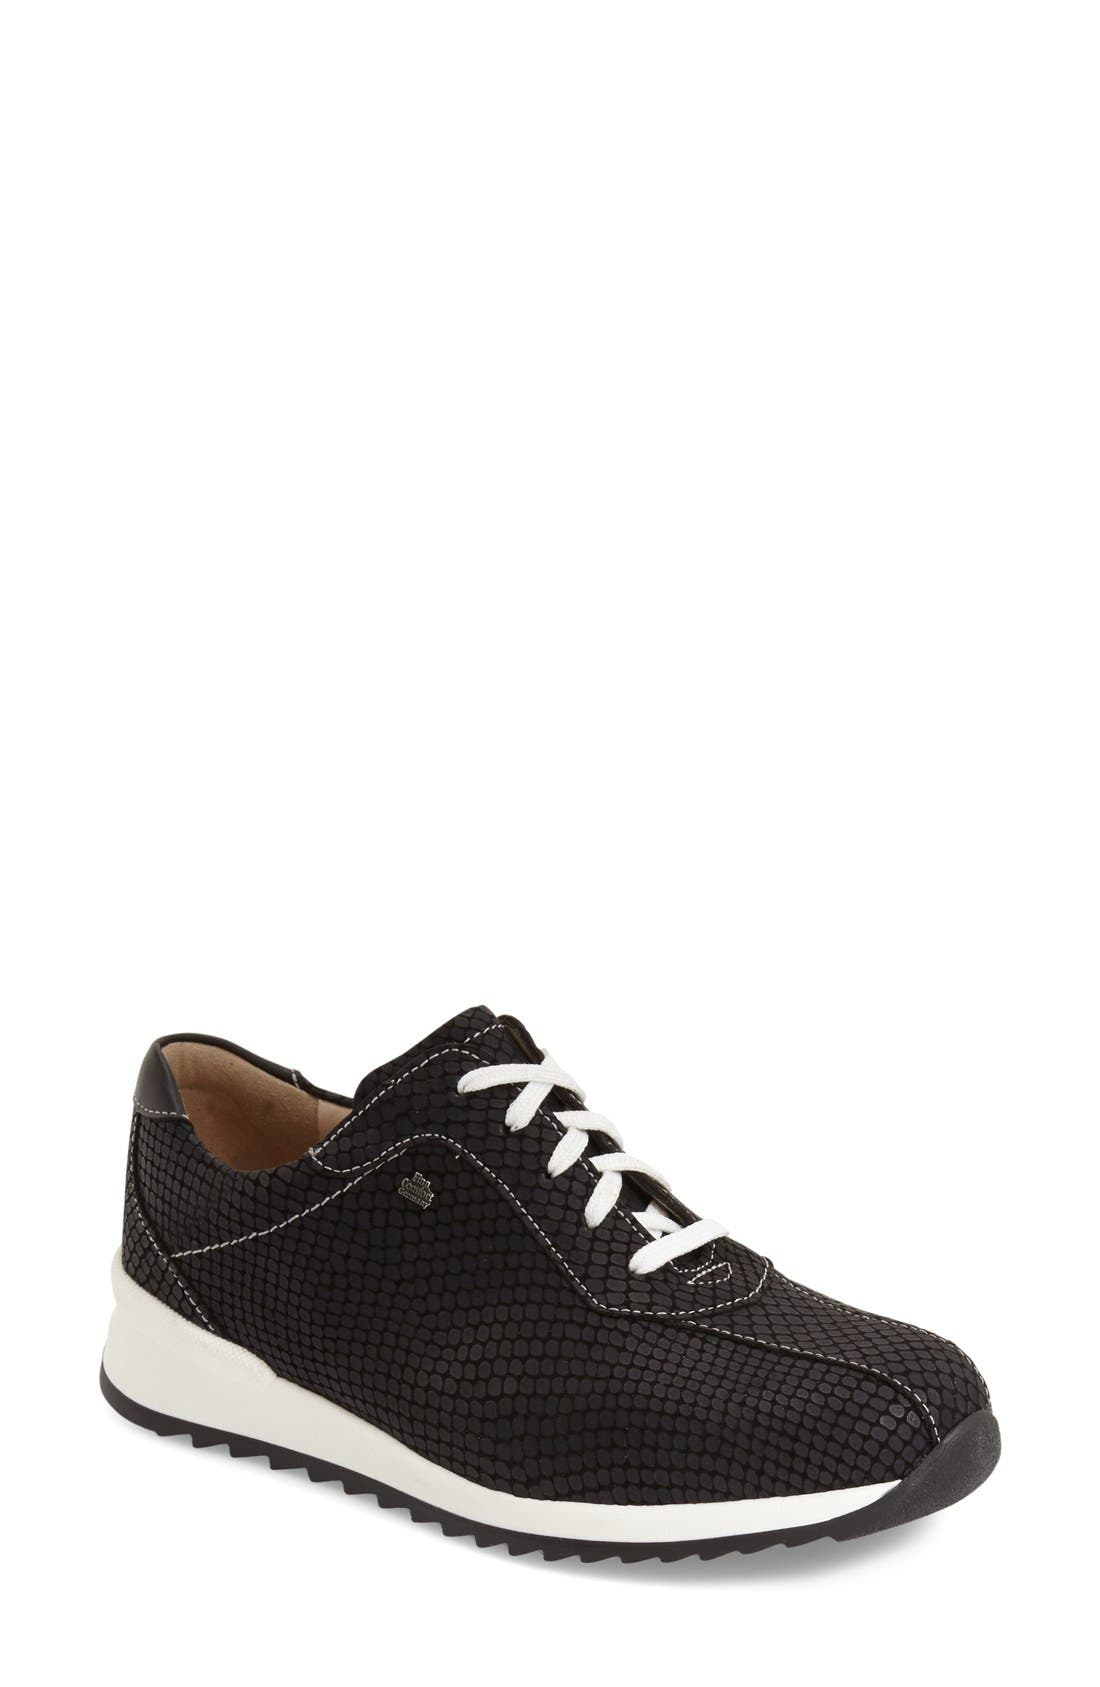 'Sarnia' Sneaker,                             Main thumbnail 1, color,                             BLACK NAPPA LEATHER